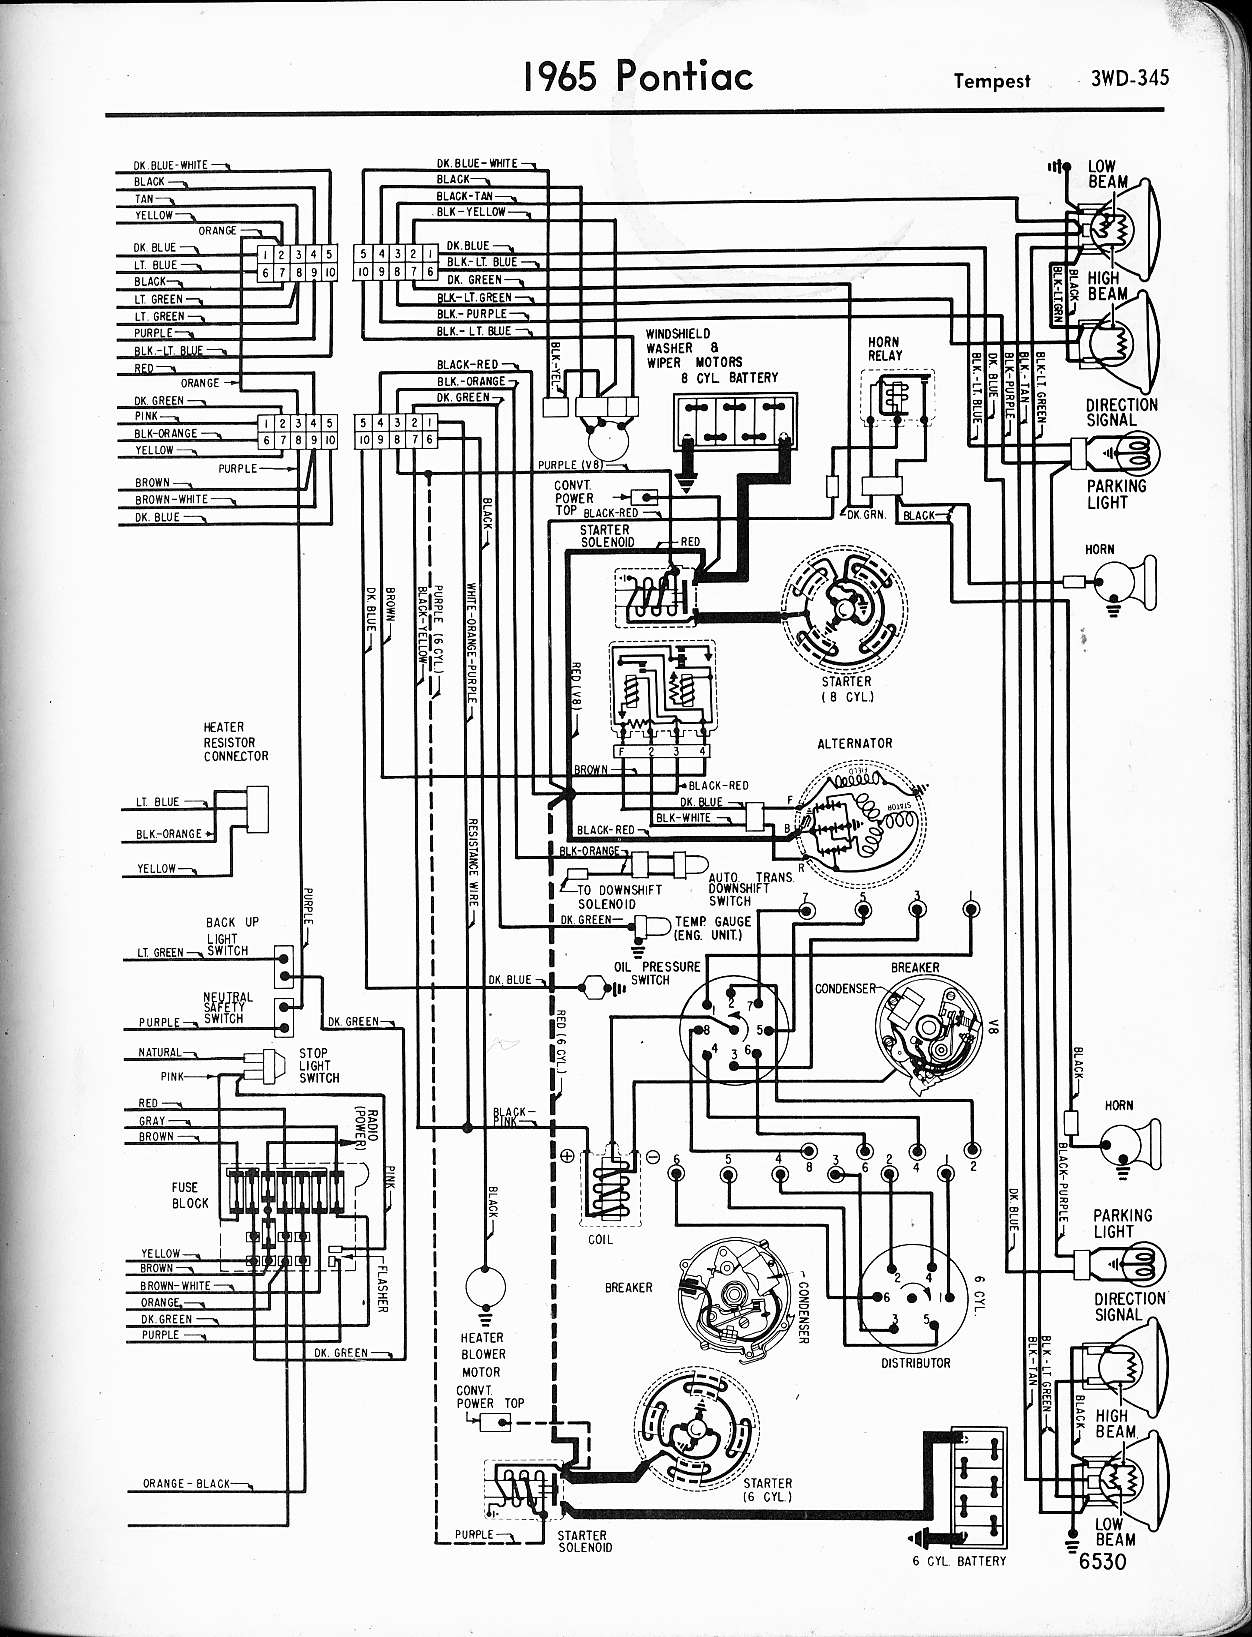 1970 Gto Wiring Diagram Schemes 1969 Firebird Fuse Box Opinions About U2022 Pontiac Schematic